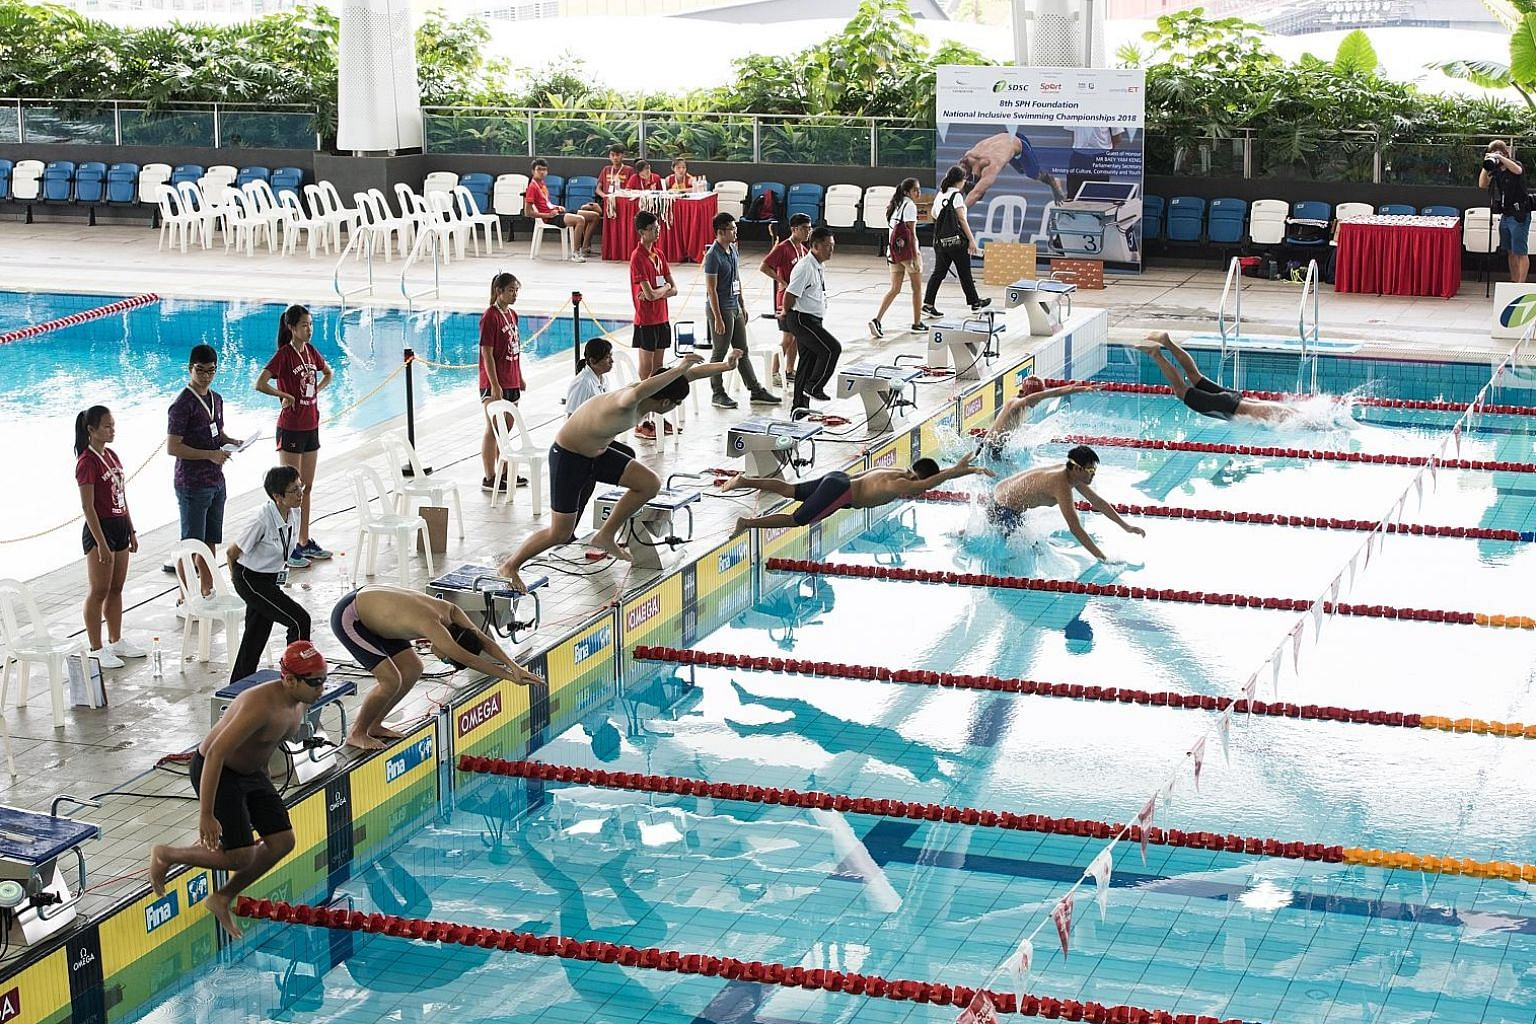 Competitors diving into the Tampines Swimming Complex pool at the National Inclusive Swimming Championships. This year's competition had swimmers with autism and Down syndrome taking part for the first time.